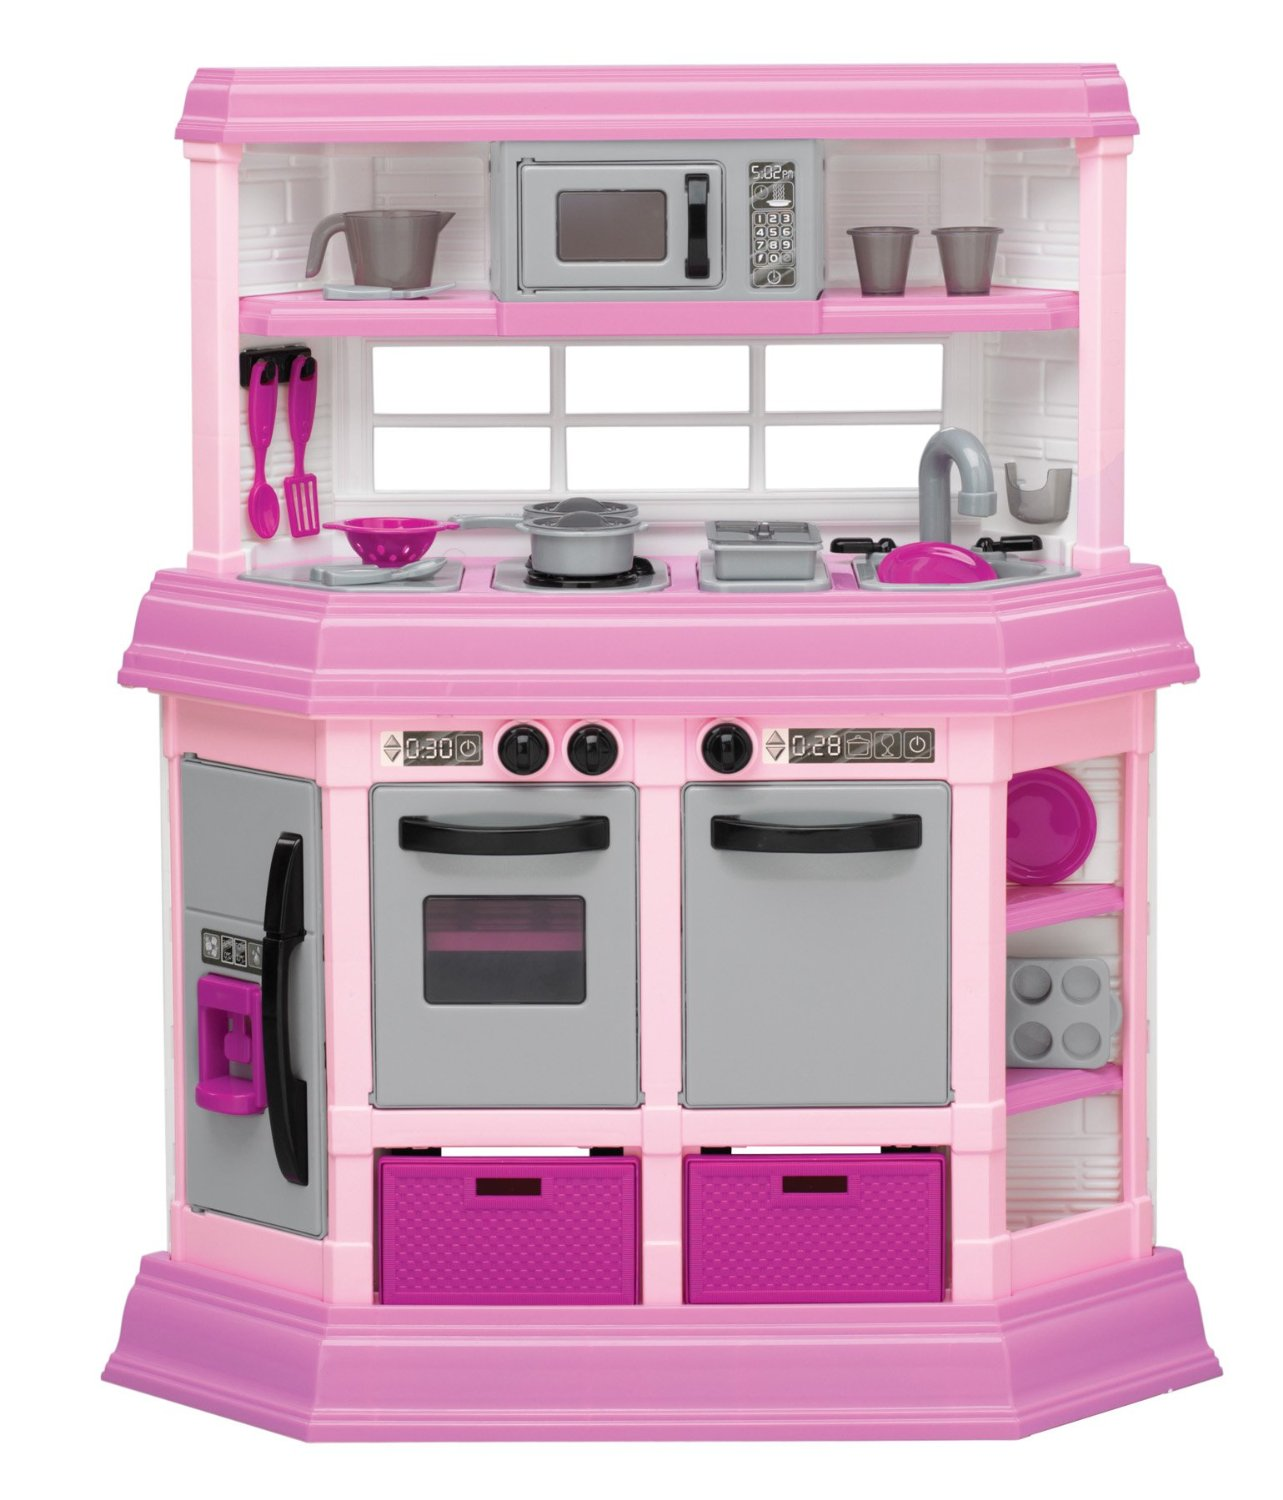 the american plastic toy deluxe custom kitchen has enough to make your